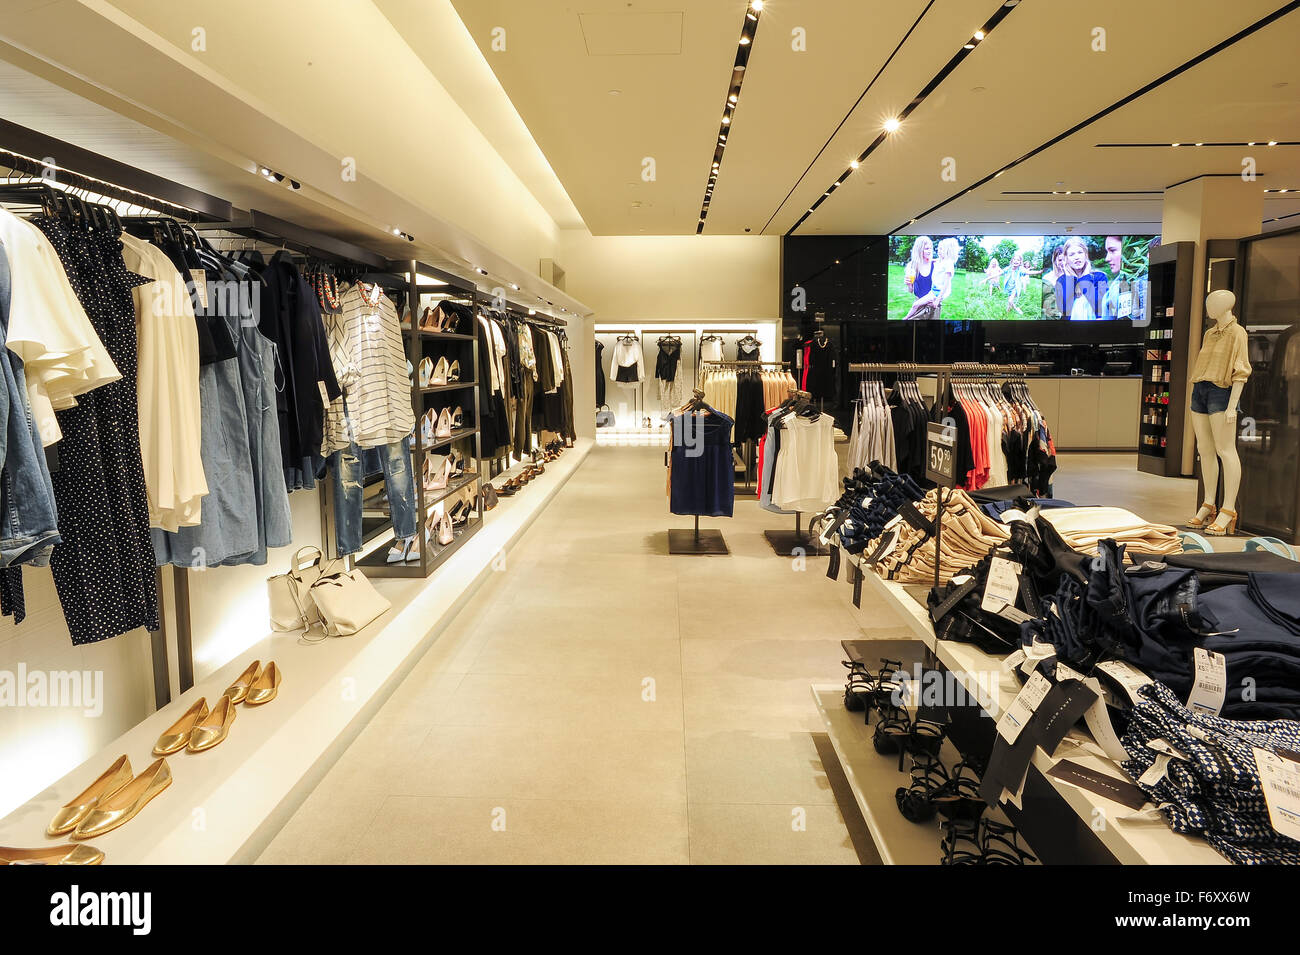 Shopping Zara High Resolution Stock Photography And Images Alamy